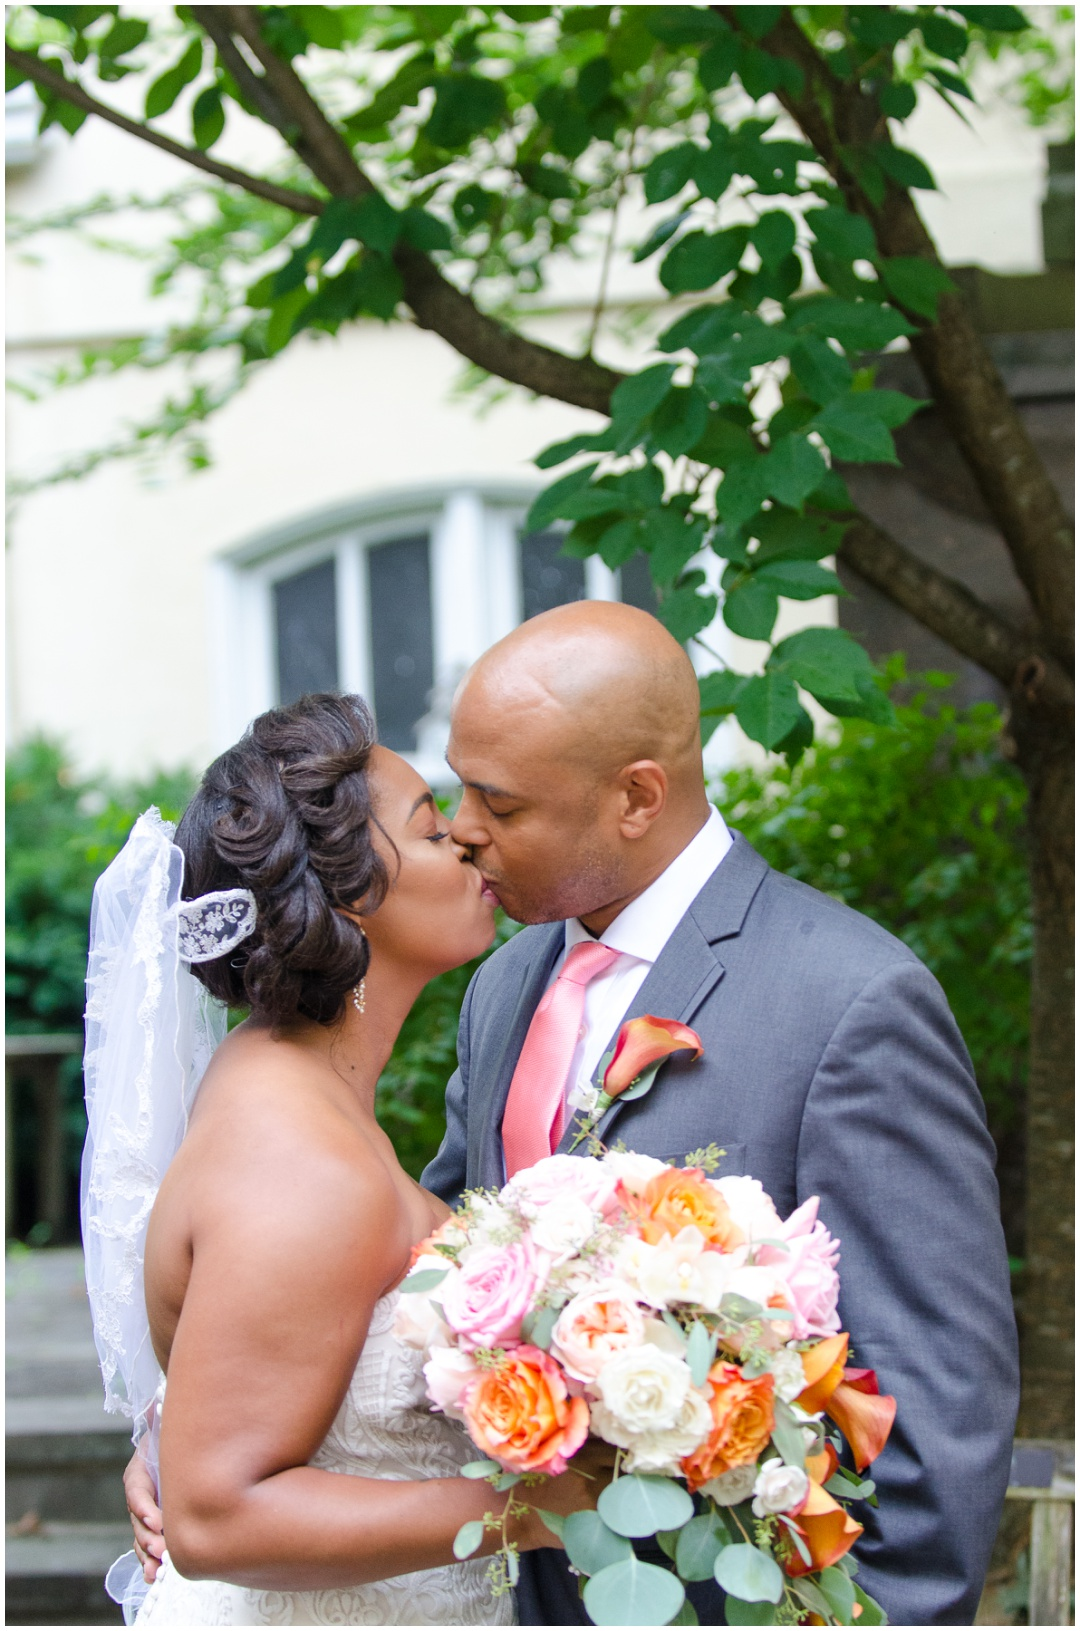 Baltimore Wedding Photos | Aaron Haslinger Photography